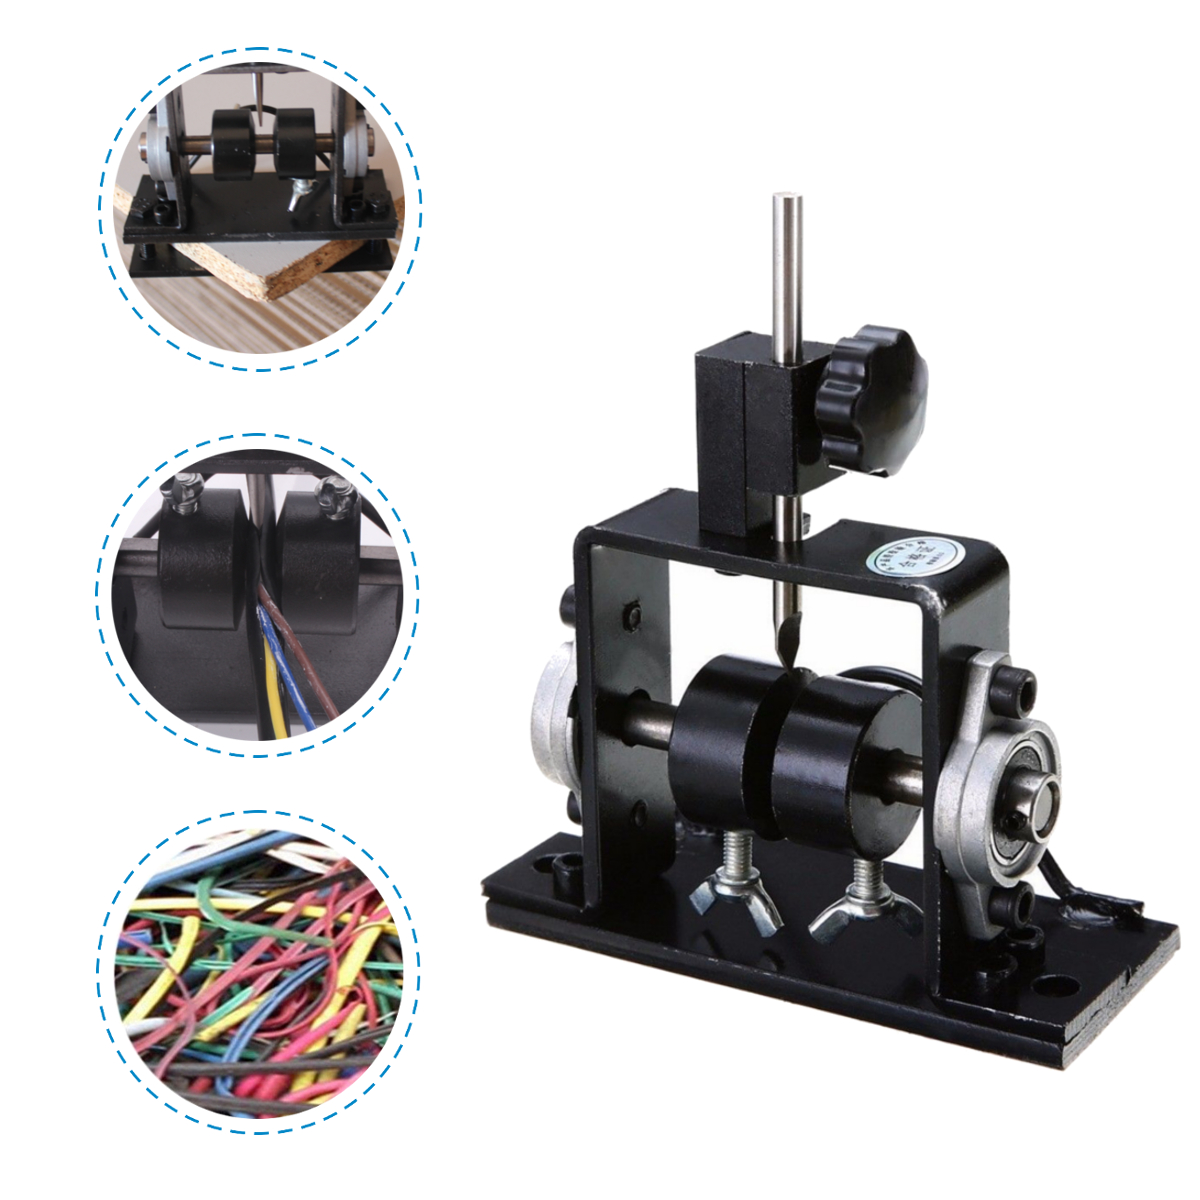 Manual Scrap Copper Wire Stripper Stripping Machine Harness Universal Cable Peeling For Metal Recycle